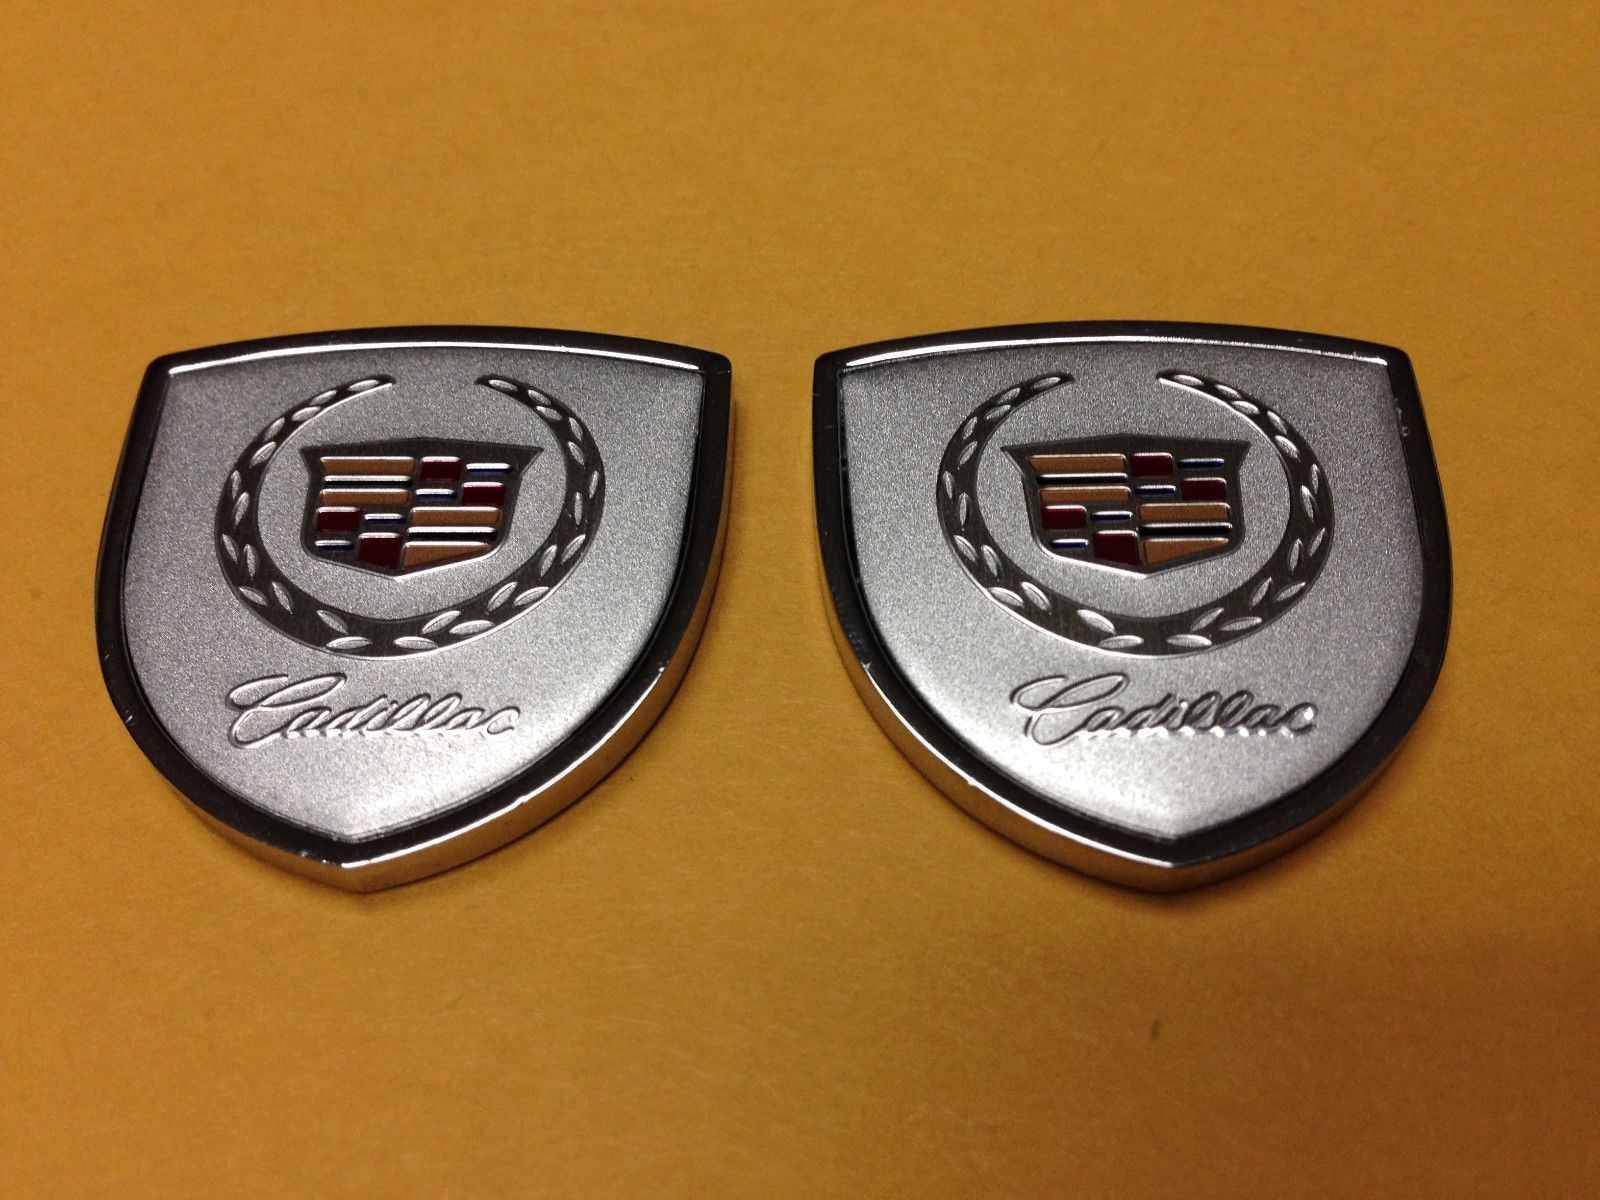 Set of 2 Black Gloss on Matte 3D 3M Adhesive Badge for Car or Truck American Flag Emblem Decal Cut-Out